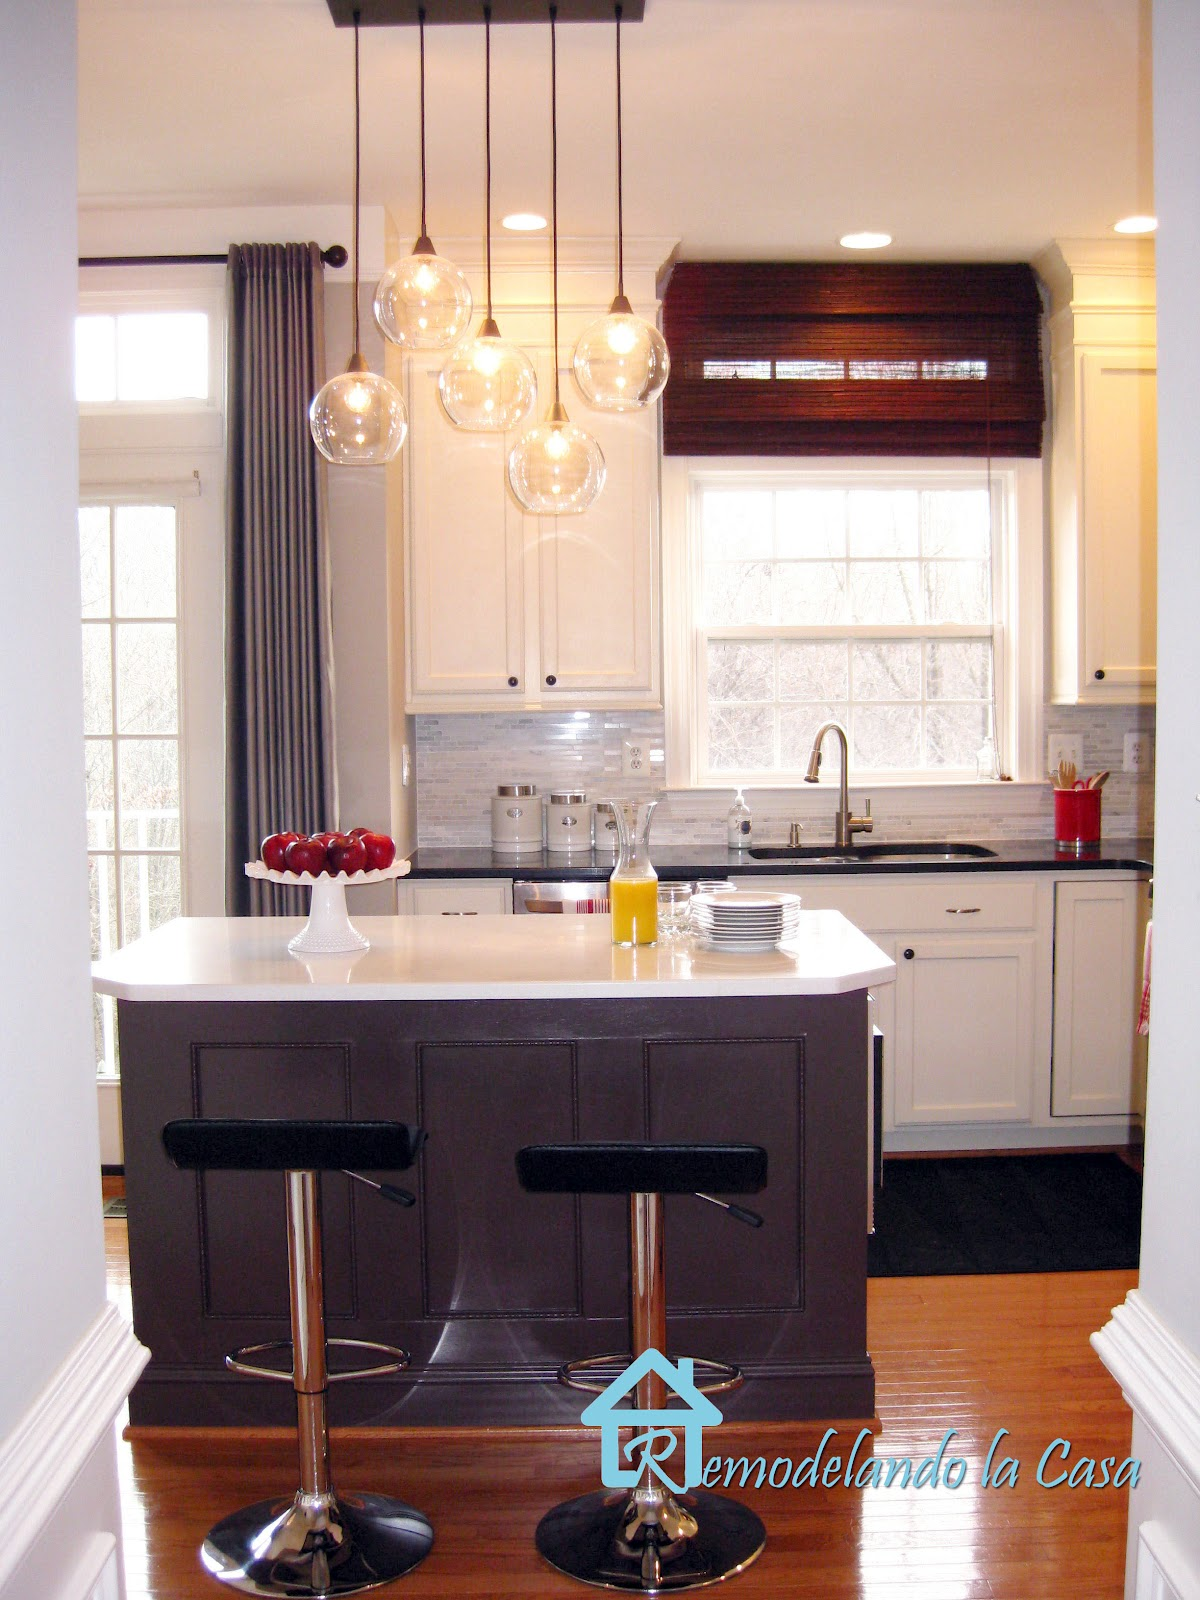 Kitchen makeover remodelando la casa for Kitchen ideas renovation